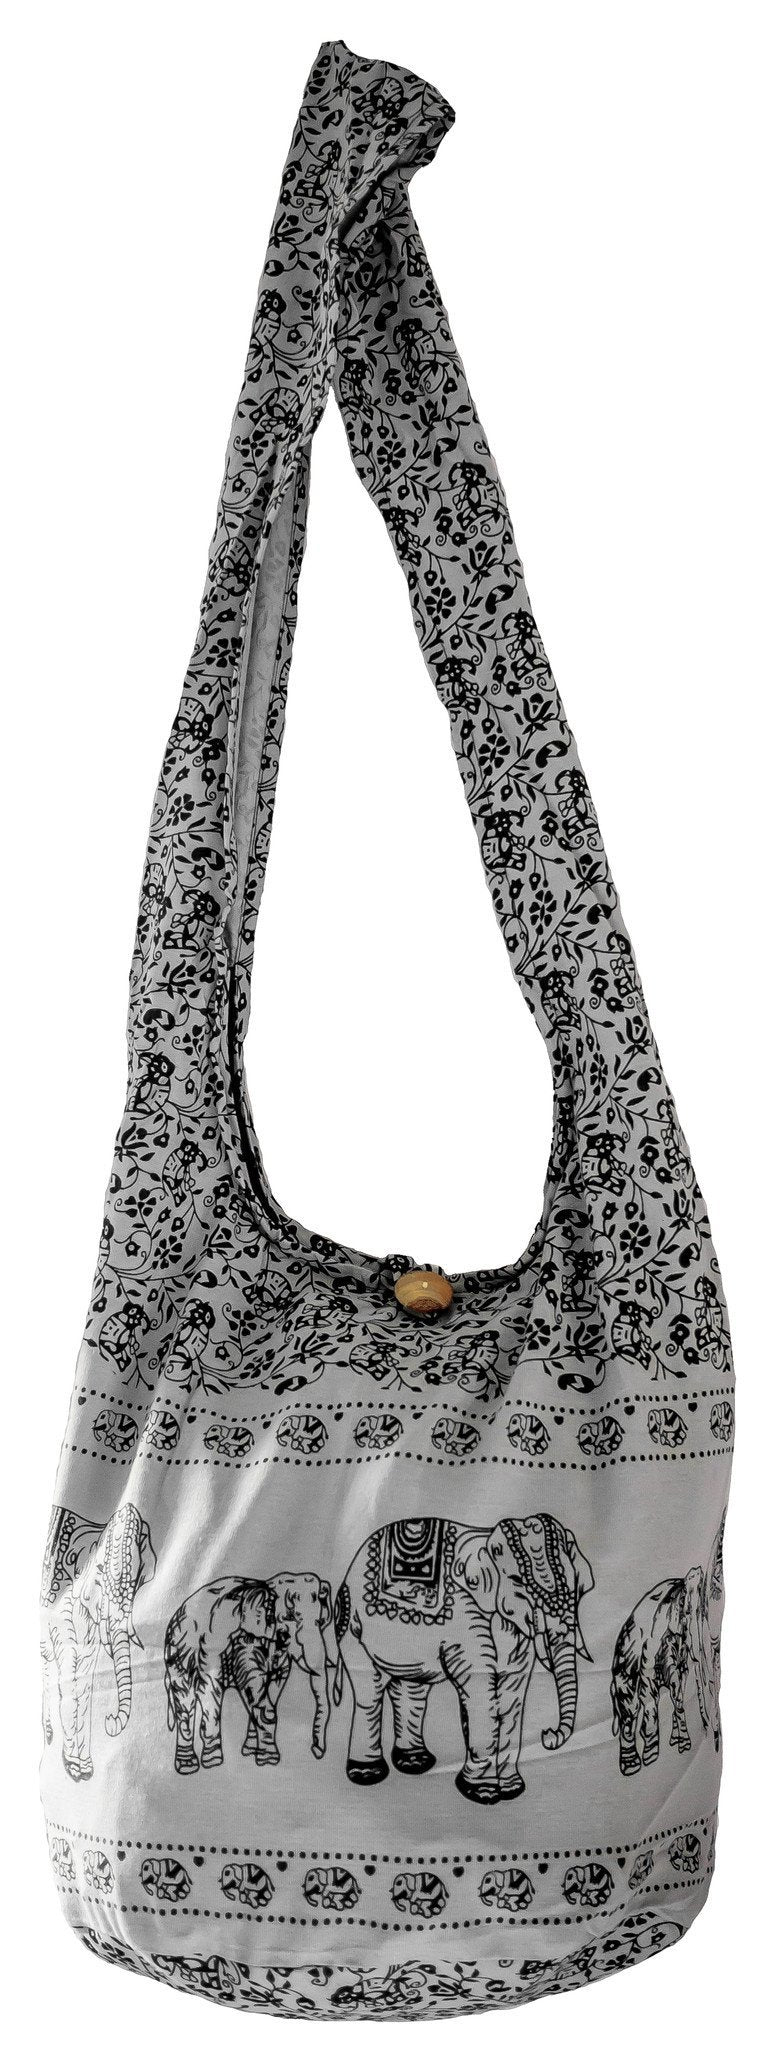 SLING ELEPHANT crossbody  bag  DAISY COTTON 40 PRINTs LARGE BOHO hippie hobo - CCCollections